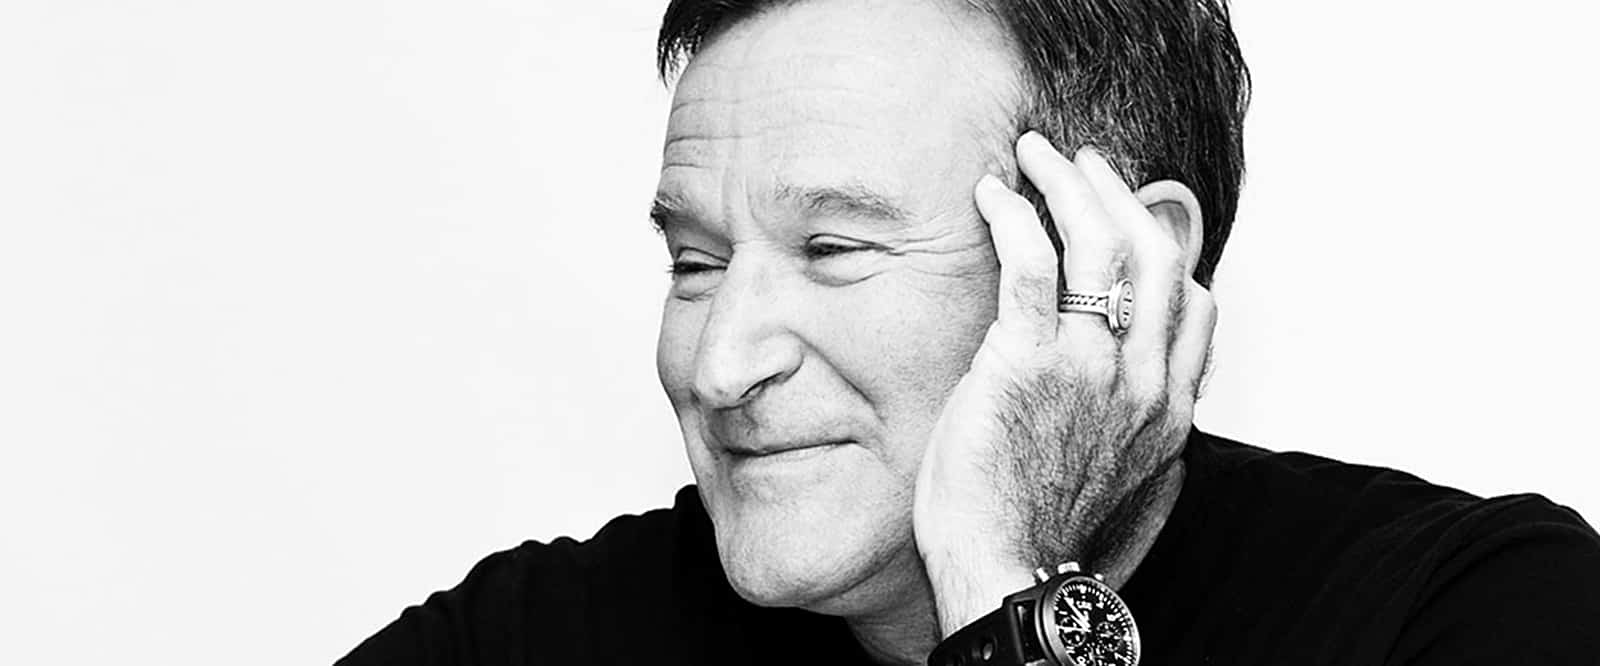 Robin Williams Devoted His Life To Making People Laugh And His Sad And  Untimely Death Shocked The World And Reminded Us That EVERYONE Needs  Support And Love ...